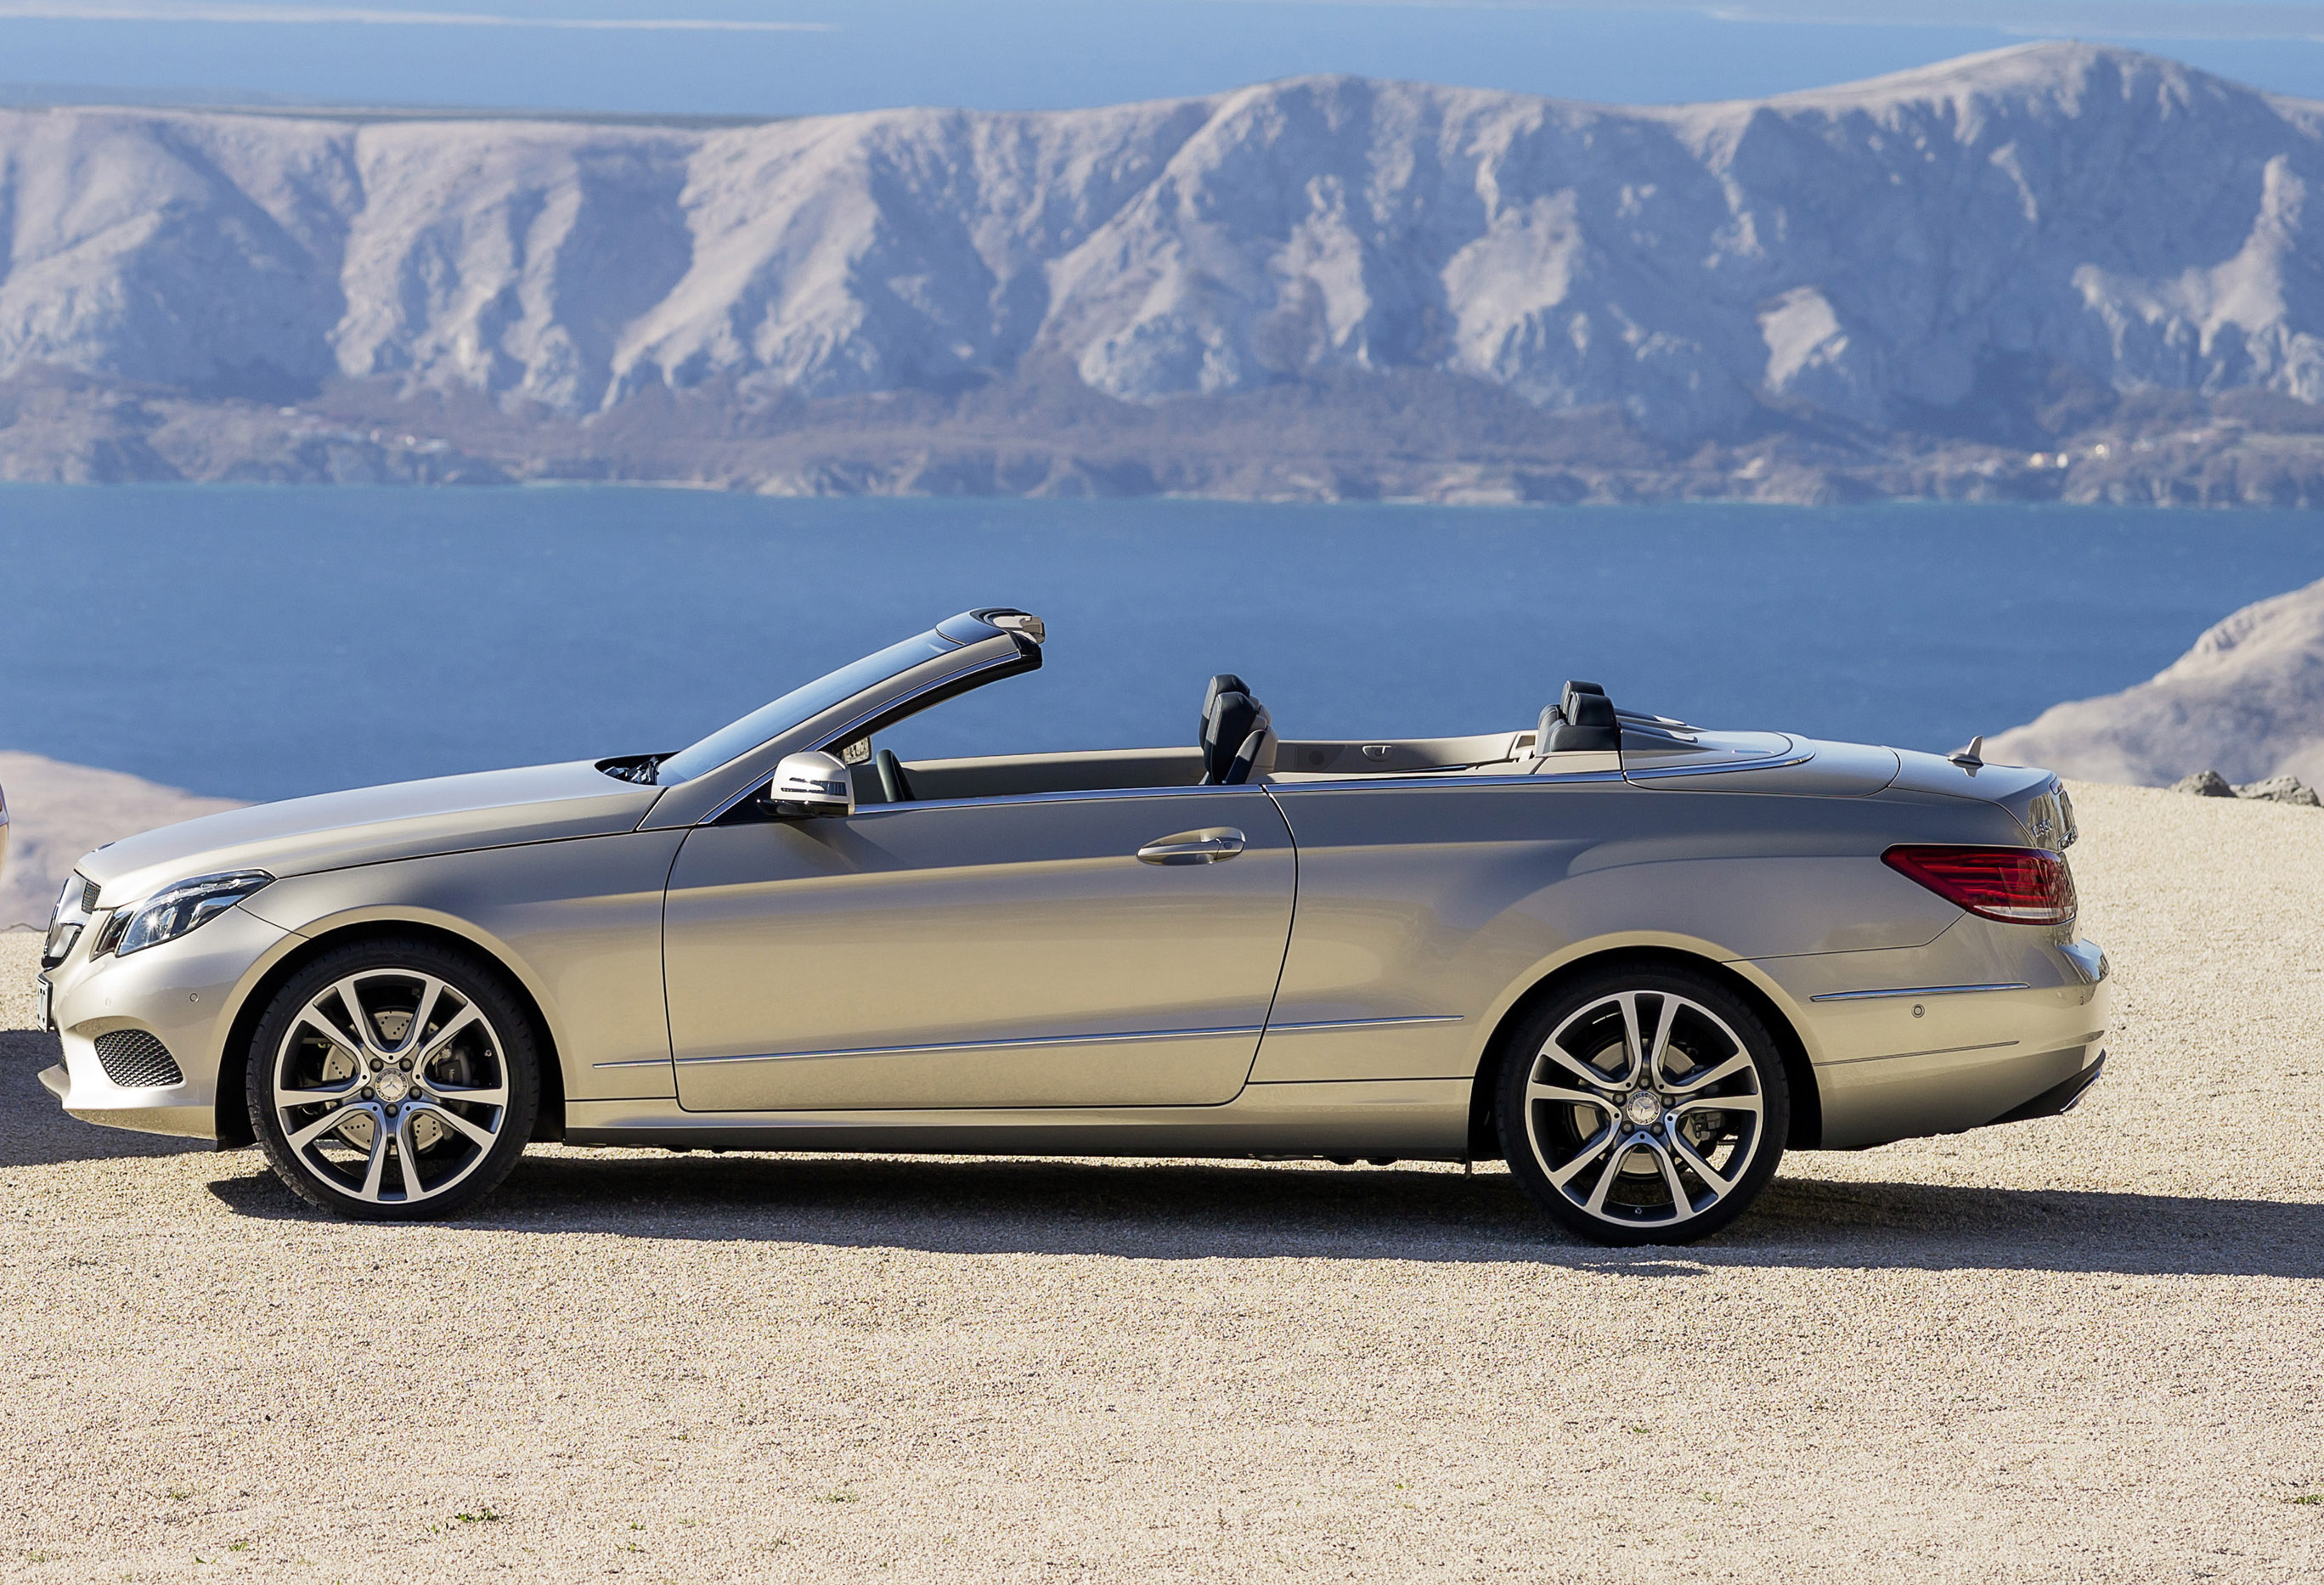 2013 mercedes benz e class cabriolet picture 85629 for 2013 mercedes benz e class convertible